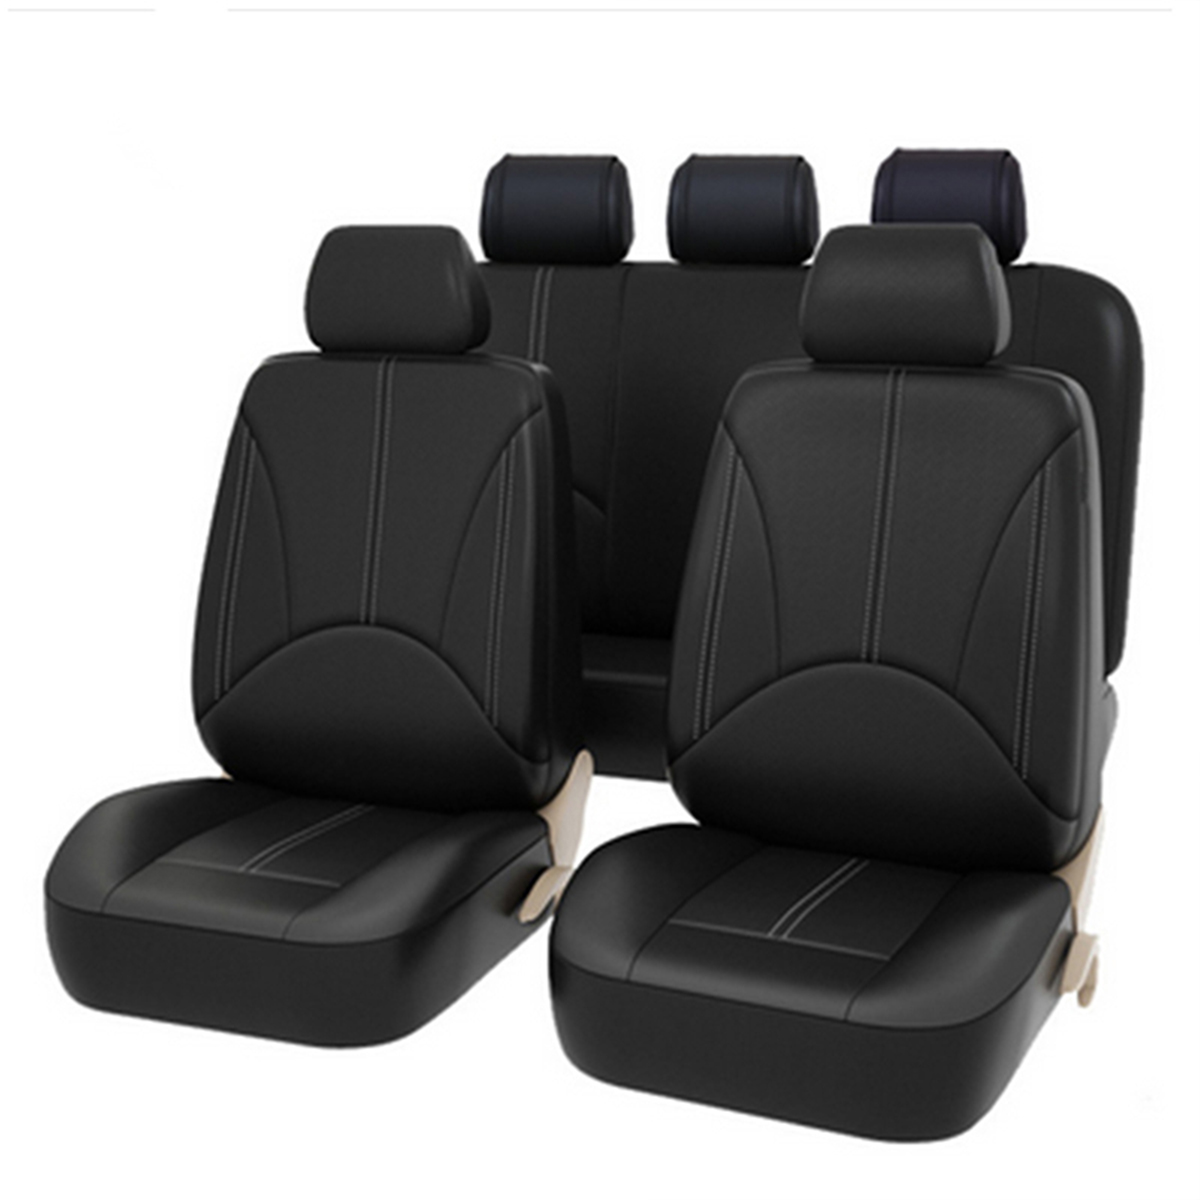 >Universal <font><b>Car</b></font> PU Leather Front <font><b>Car</b></font> <font><b>Seat</b></font> Covers Back Bucket <font><b>Car</b></font> <font><b>Seat</b></font> Cover Auto Interior <font><b>Car</b></font> <font><b>Seat</b></font> Protector Cover High Quality